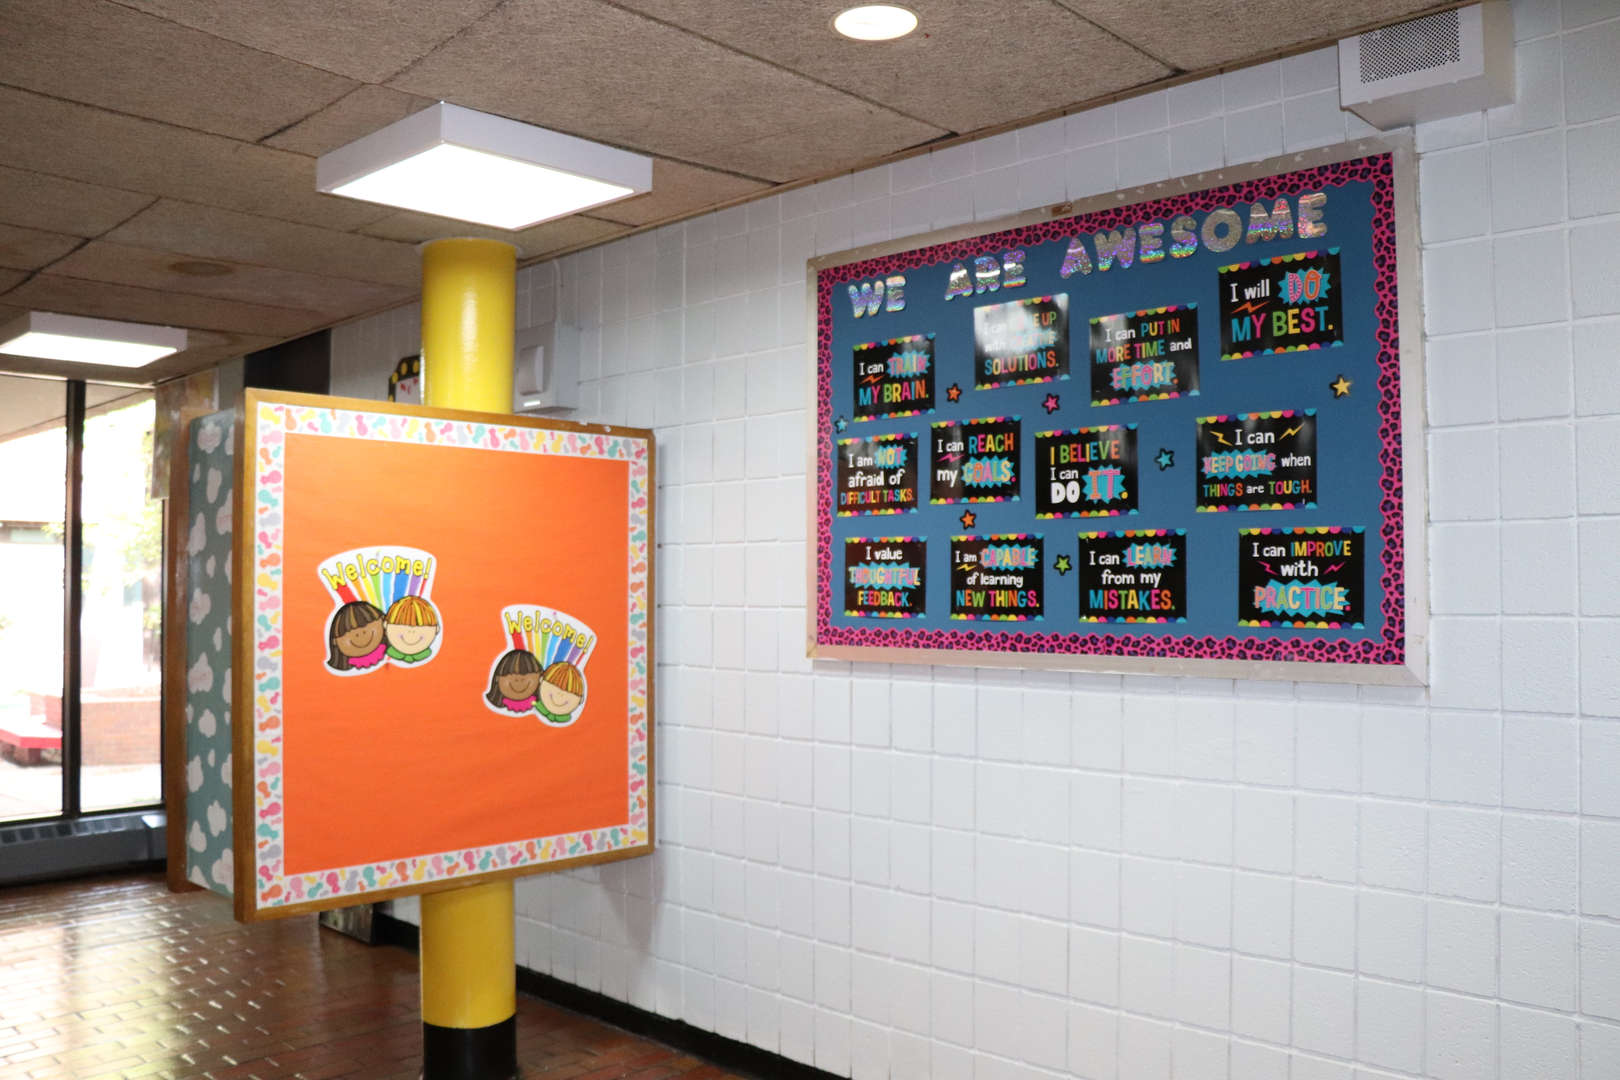 One of the bulletin boards in the main lobby.